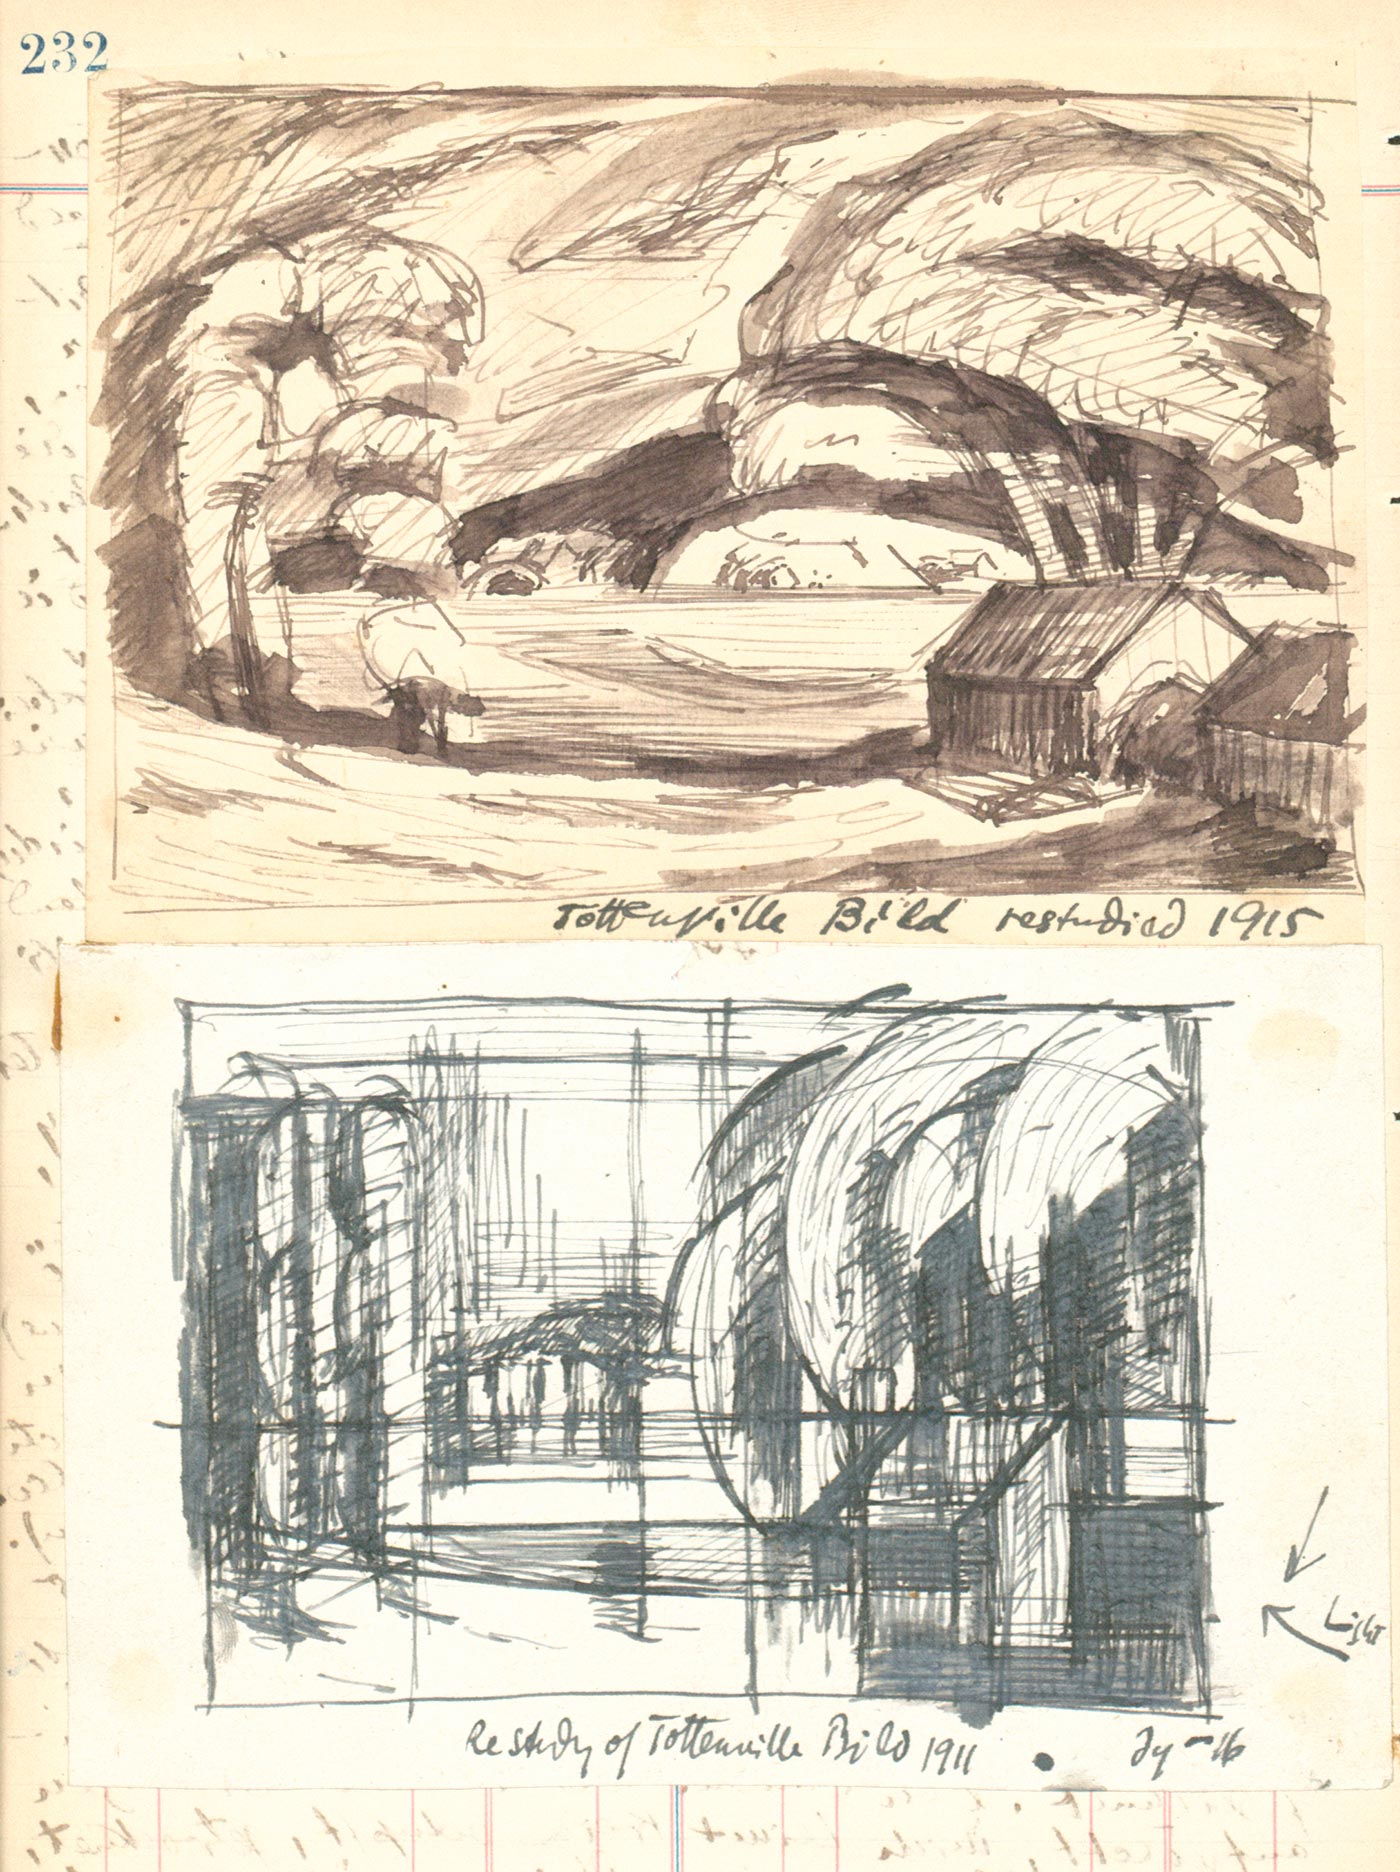 Sketches and notes for Perth Amboy West (Tottenville)